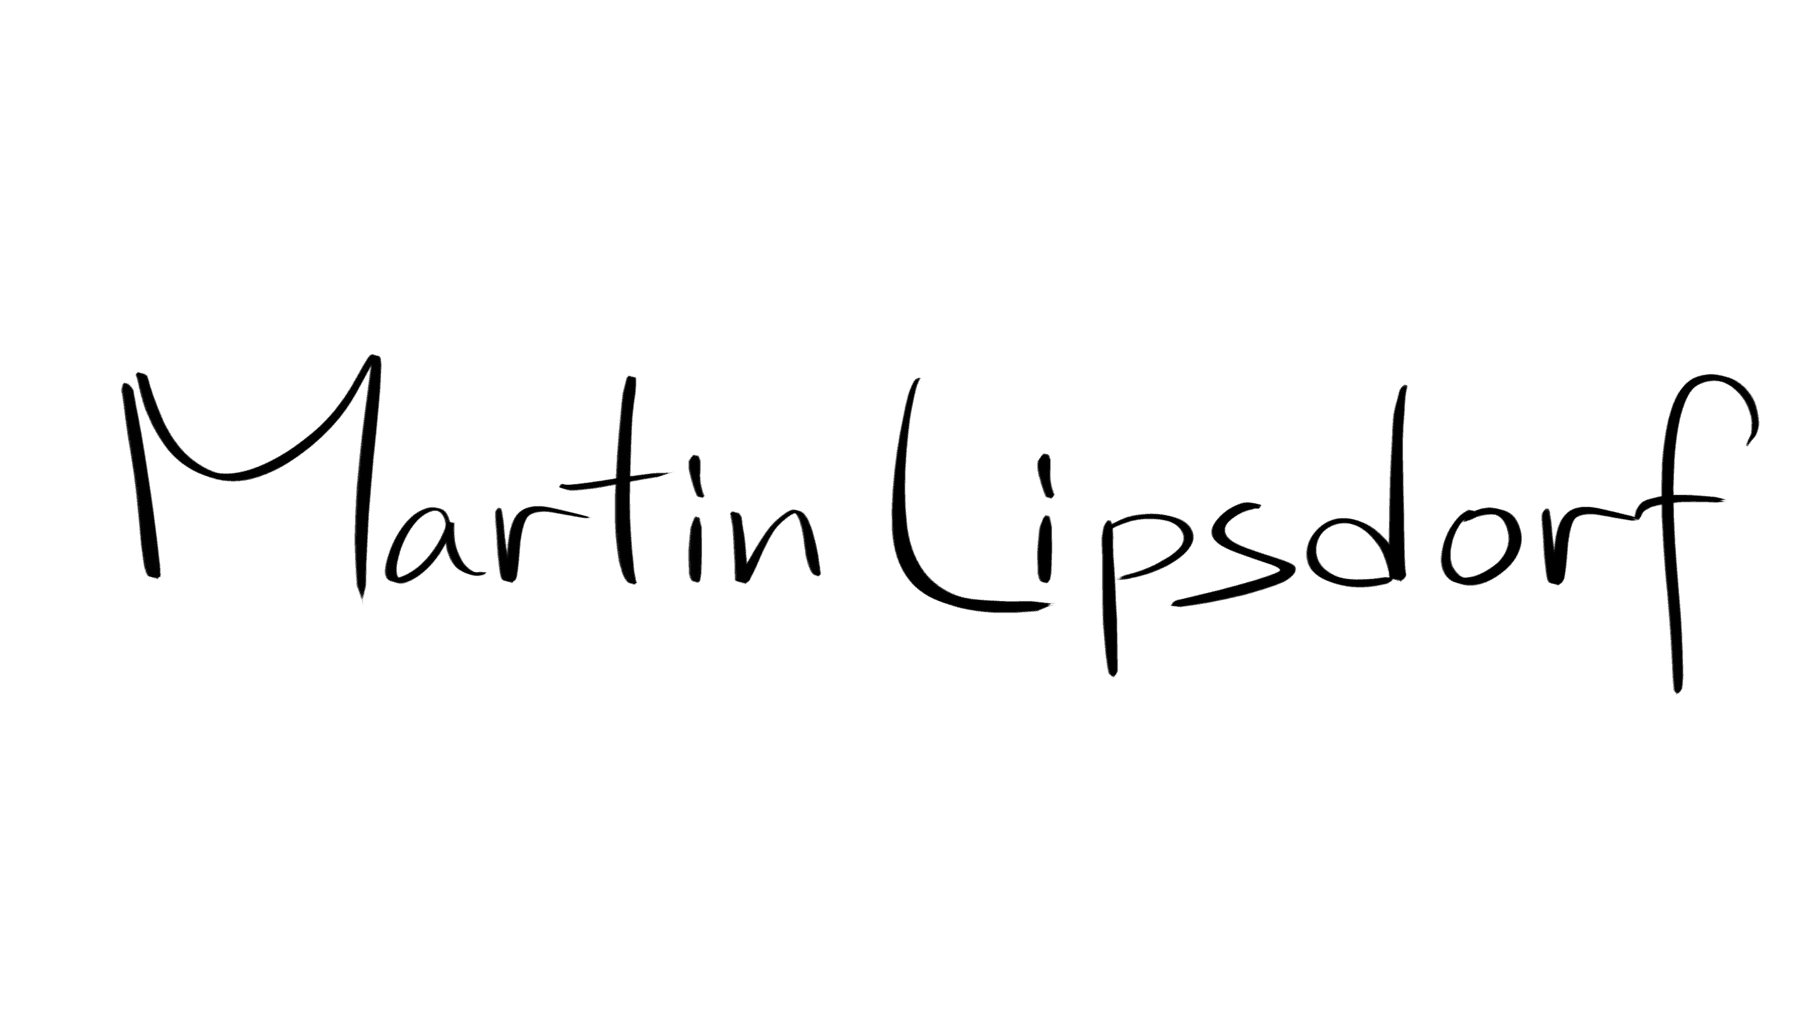 Martin_Lipsdorf__black_on_transparent